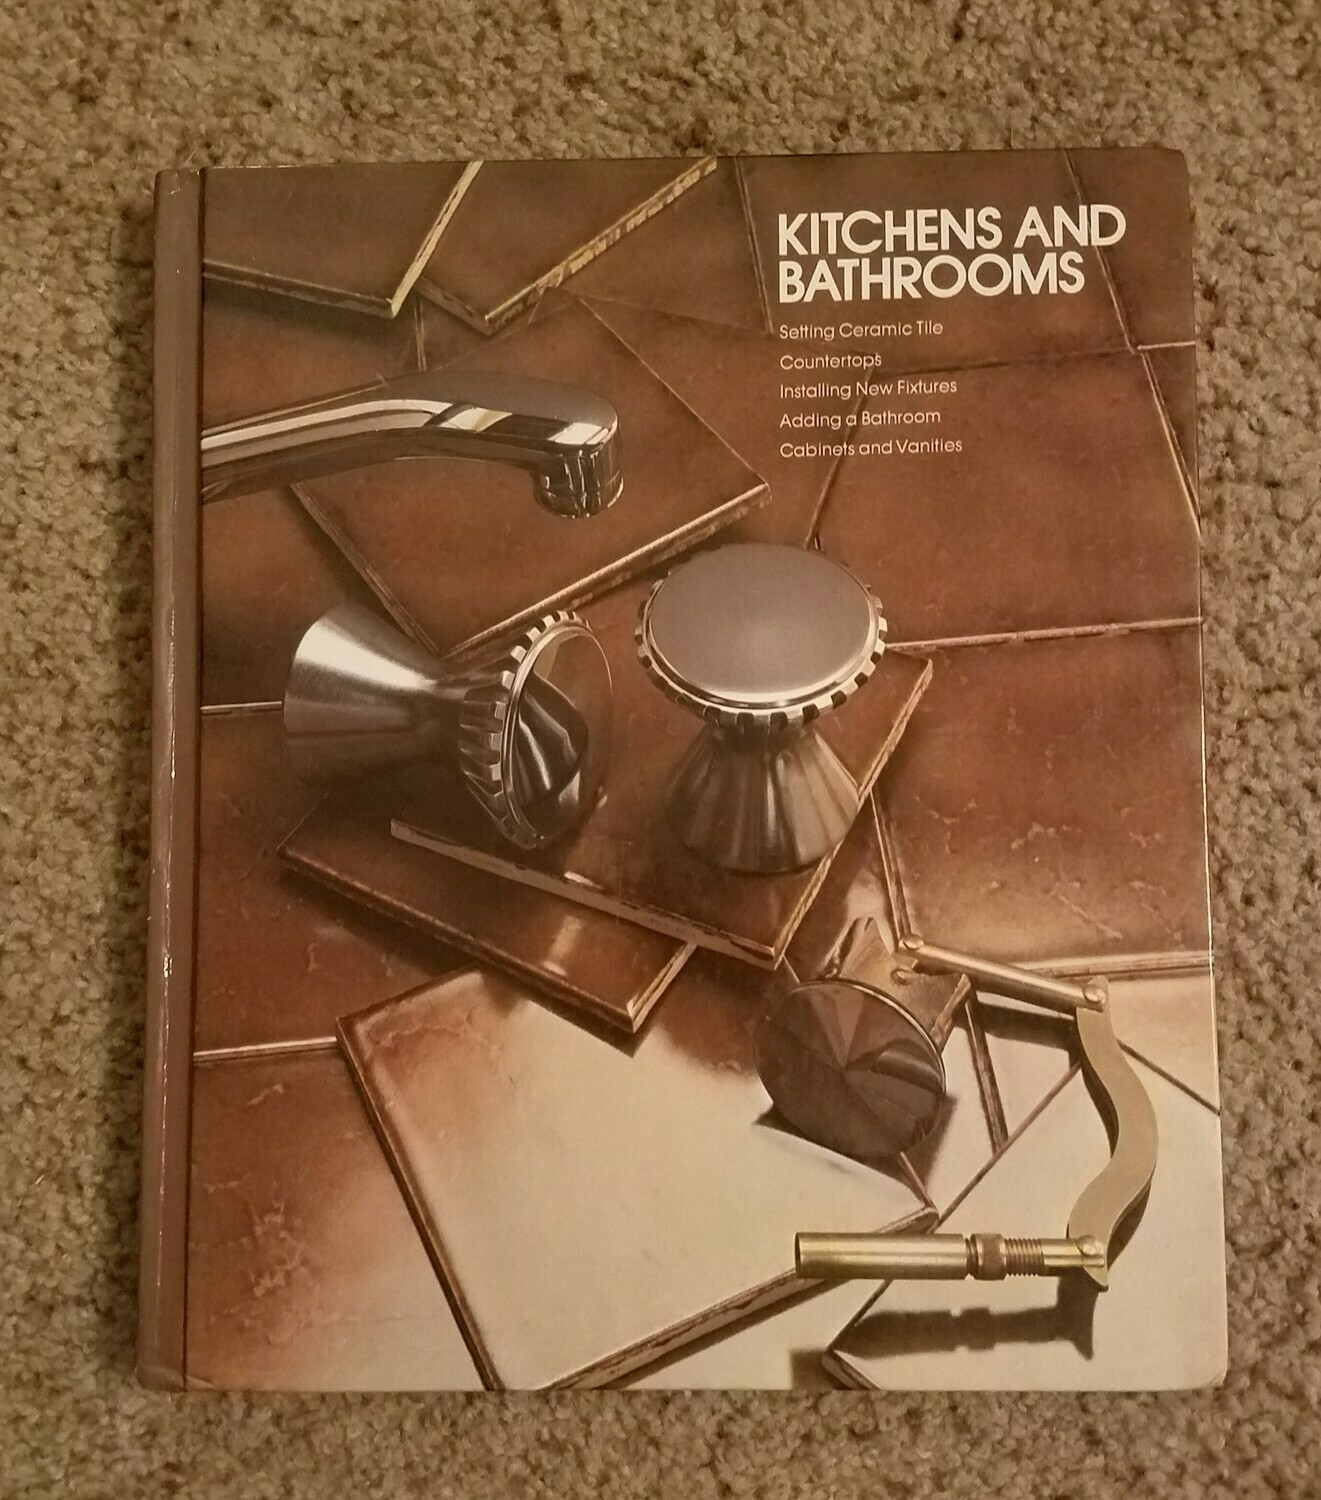 Kitchens and Bathrooms by Editors of Time-Life Books